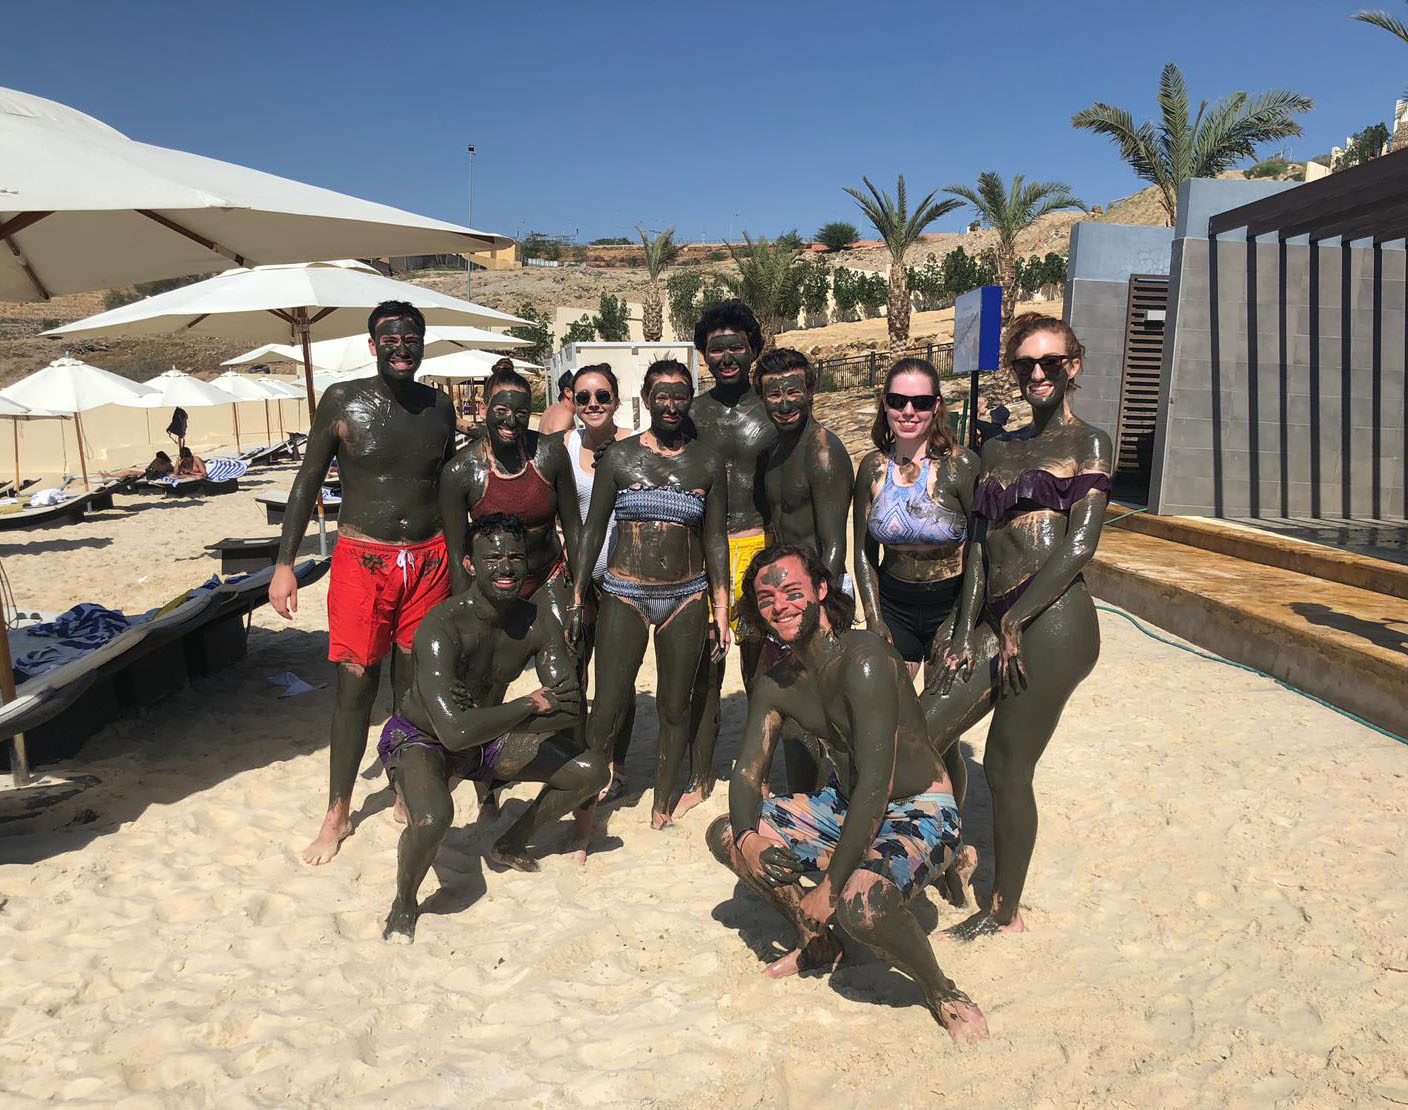 We had so much fun with the Dead Sea mud. Photo credit: Arguin, 2019